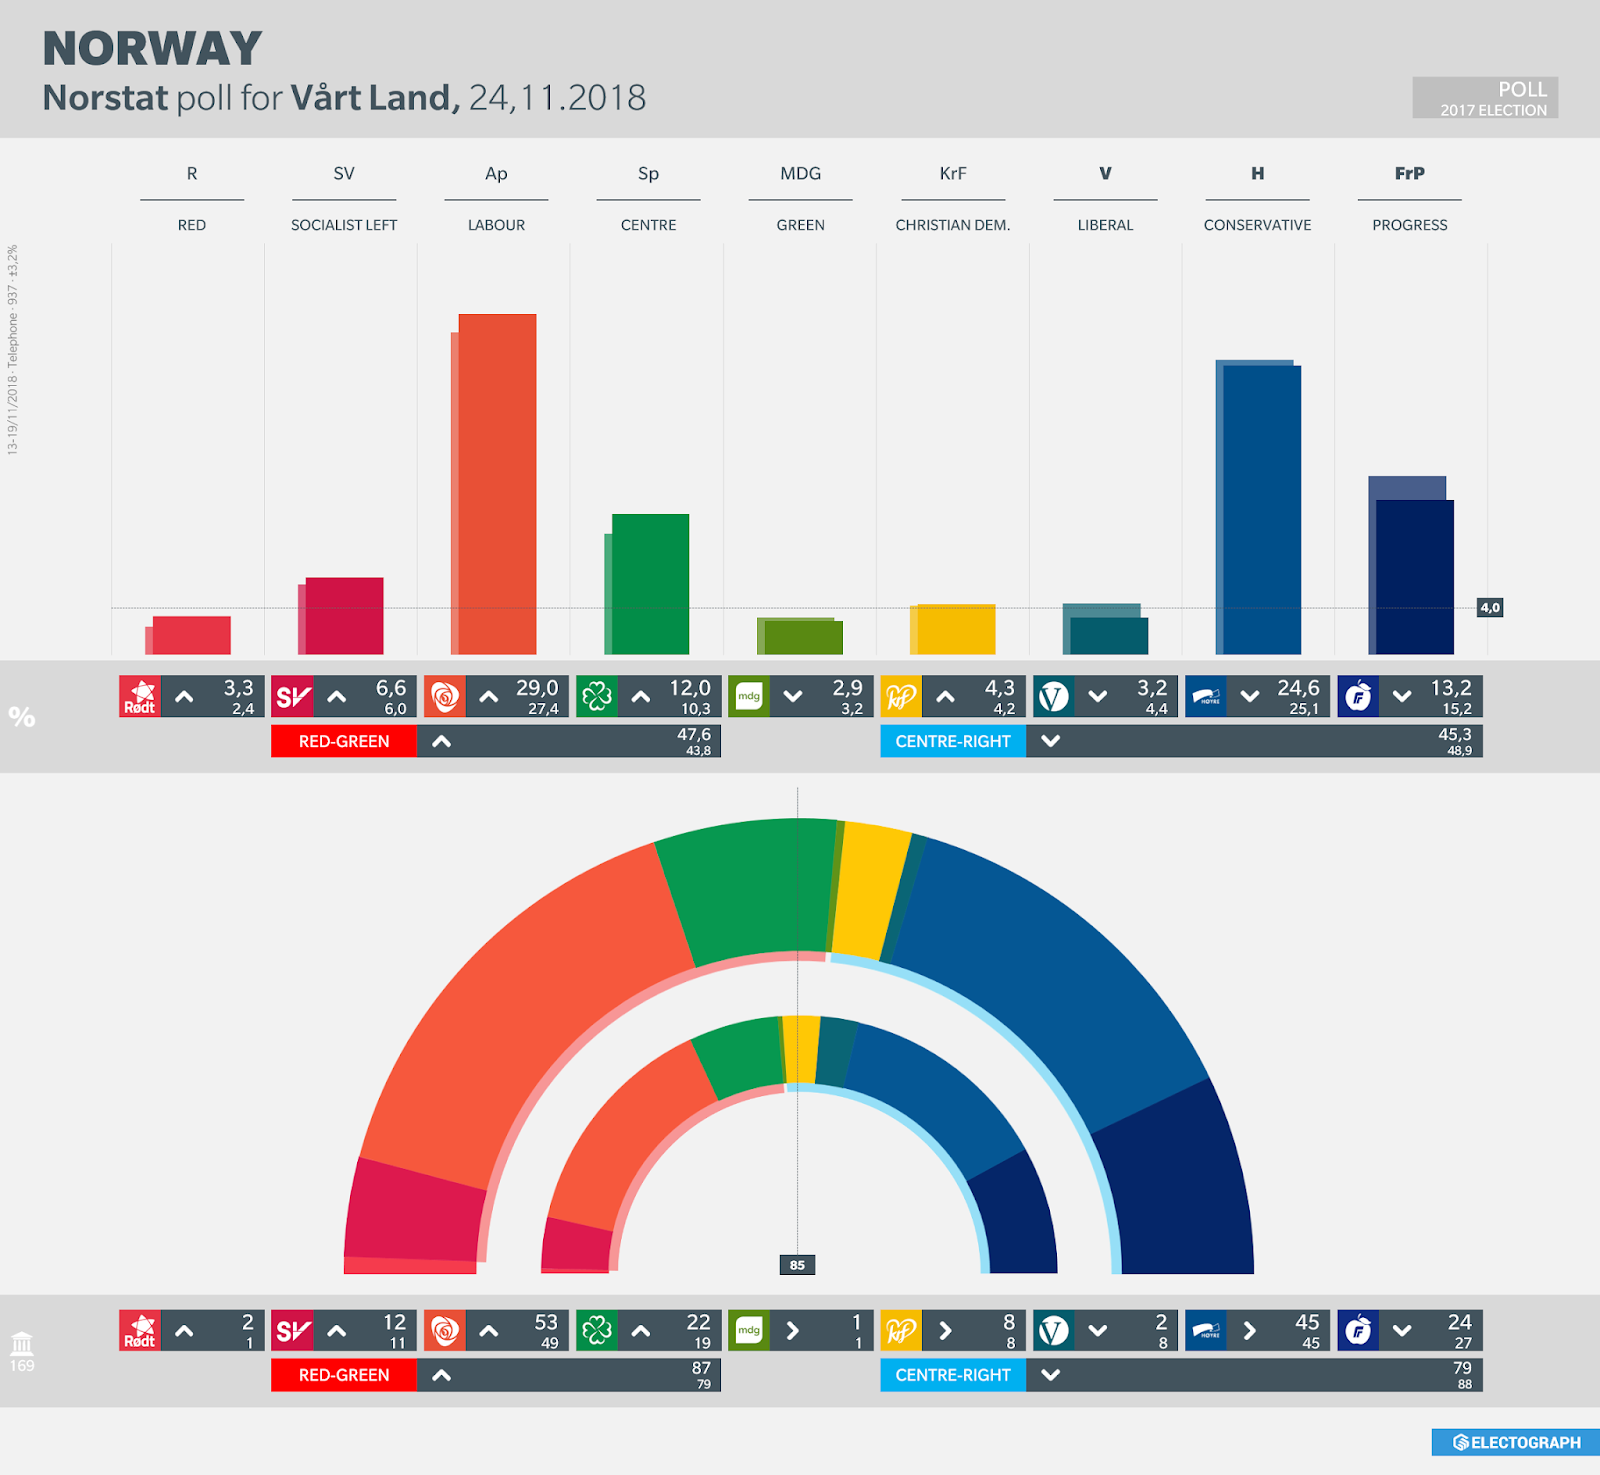 NORWAY: Norstat poll chart for Vårt Land, 24 November 2018